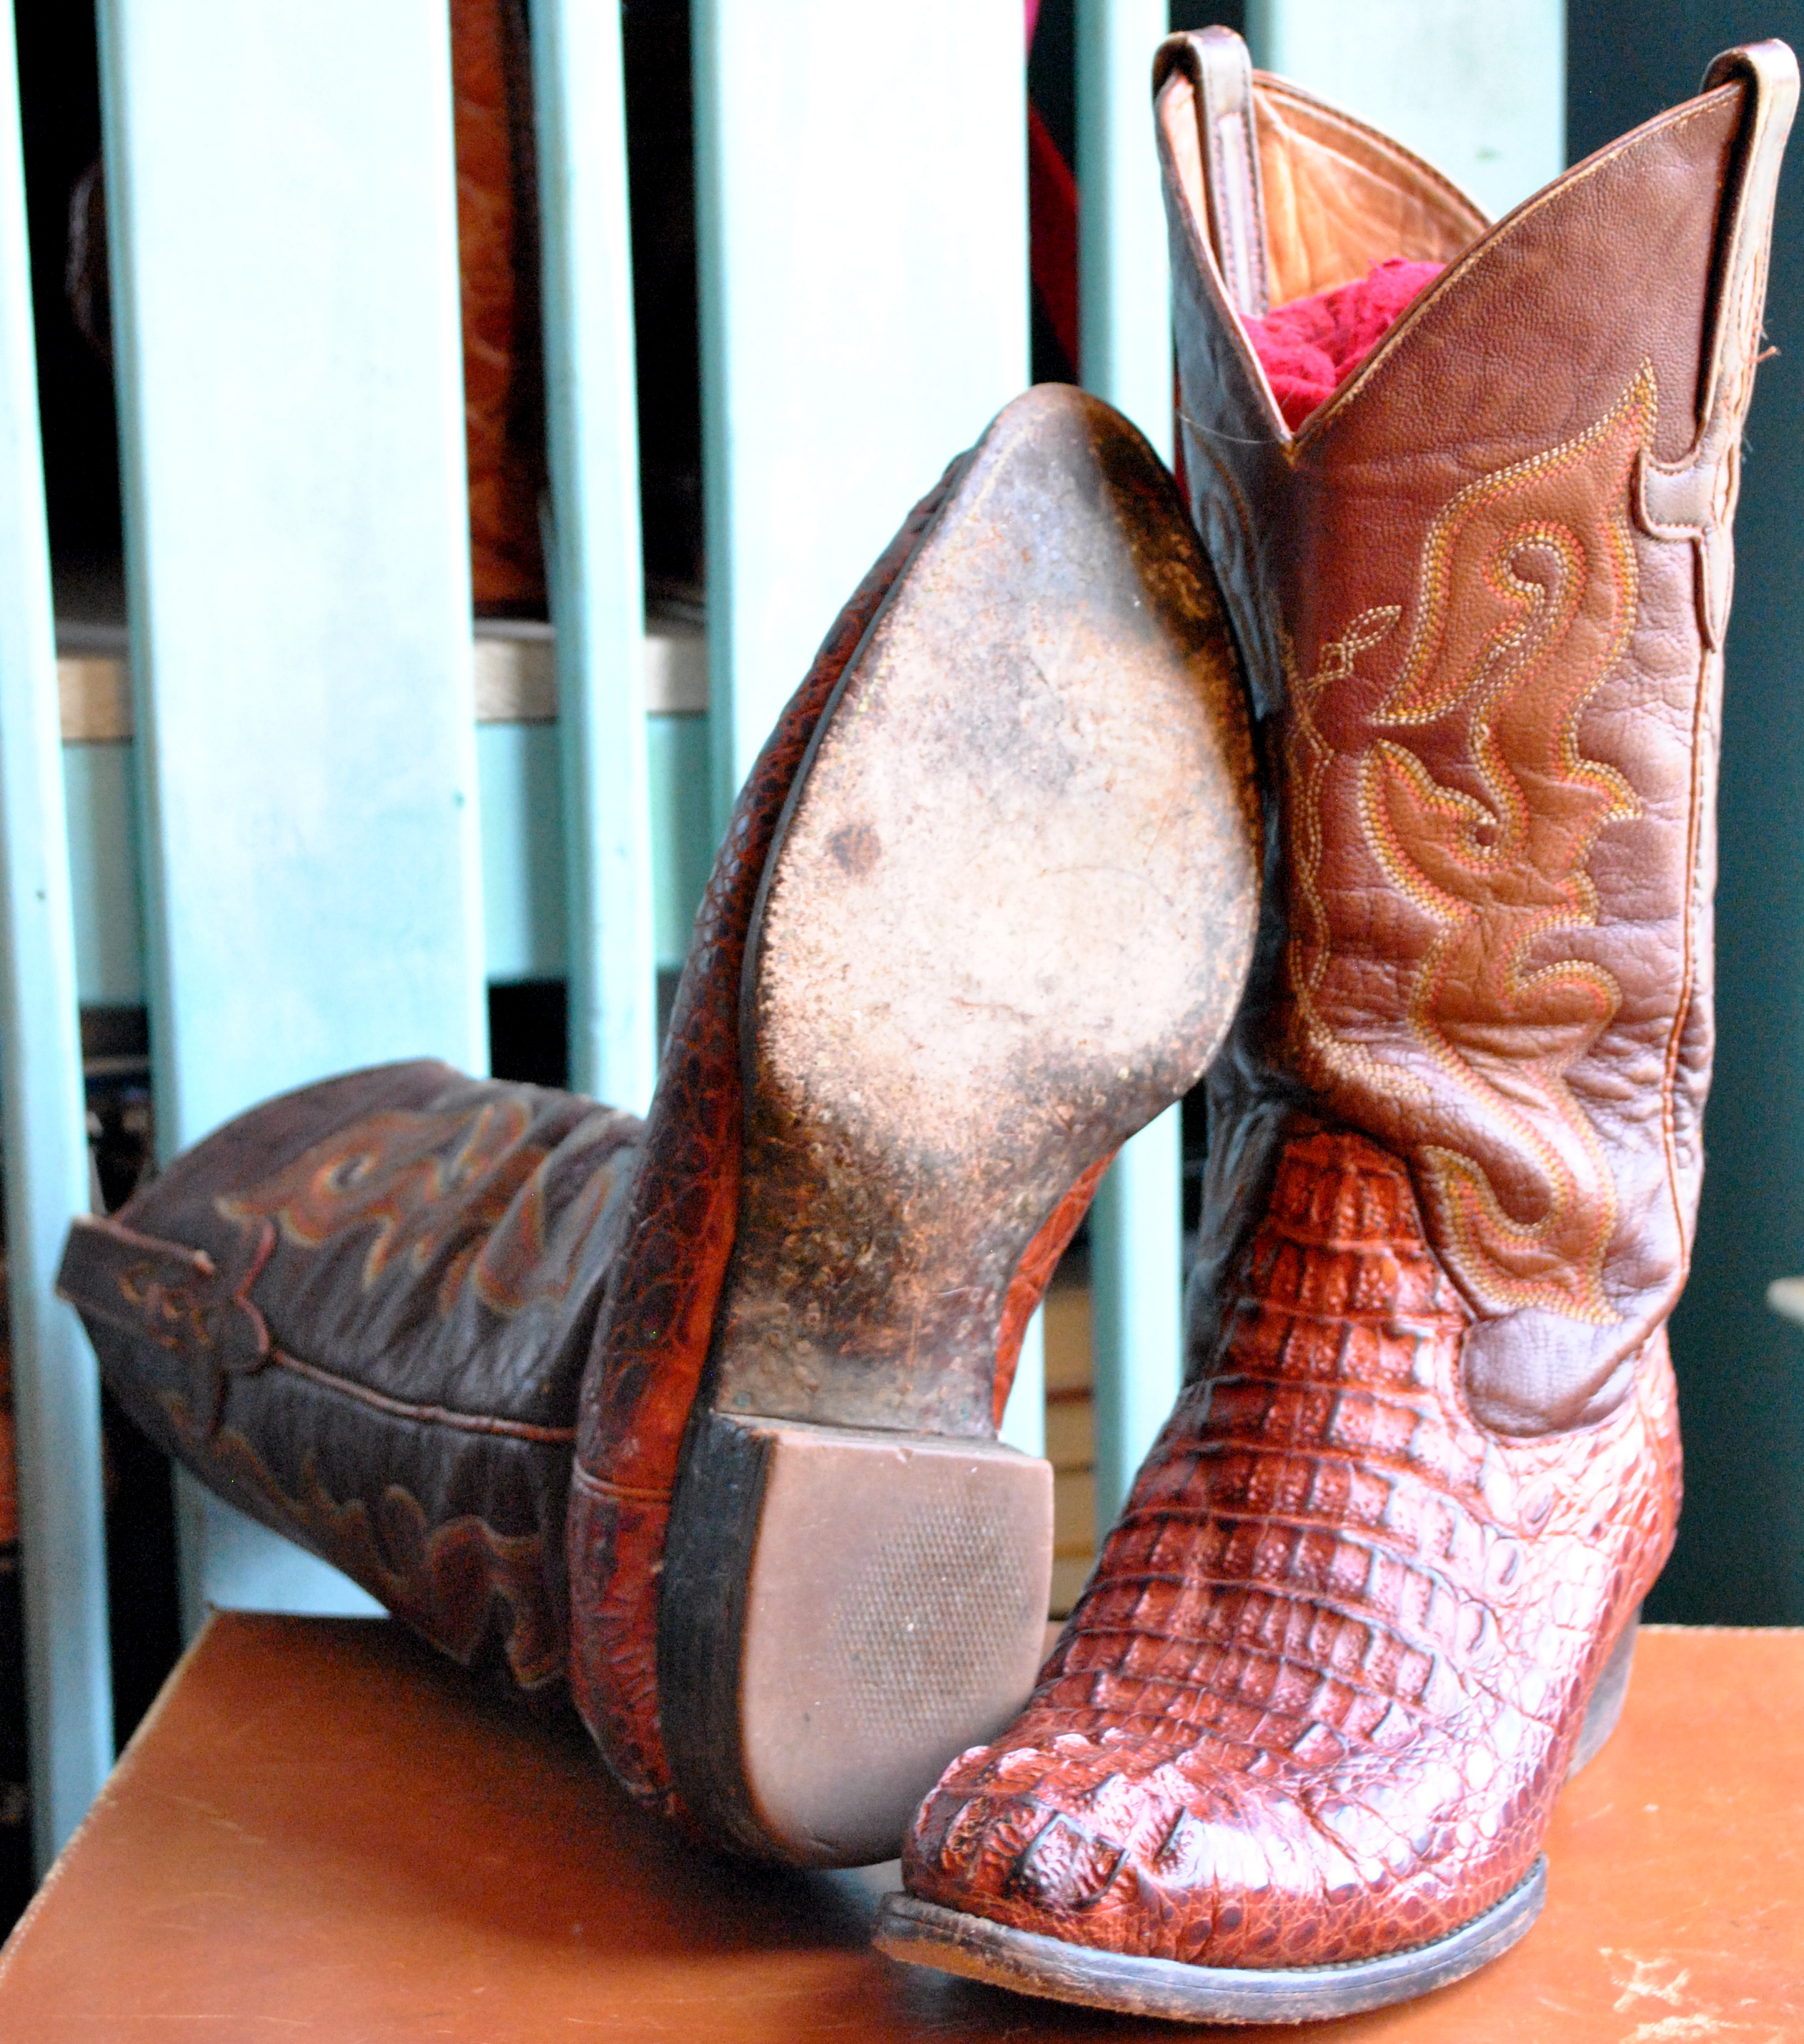 Vintage Cowgirl Boots zMbQO3Up